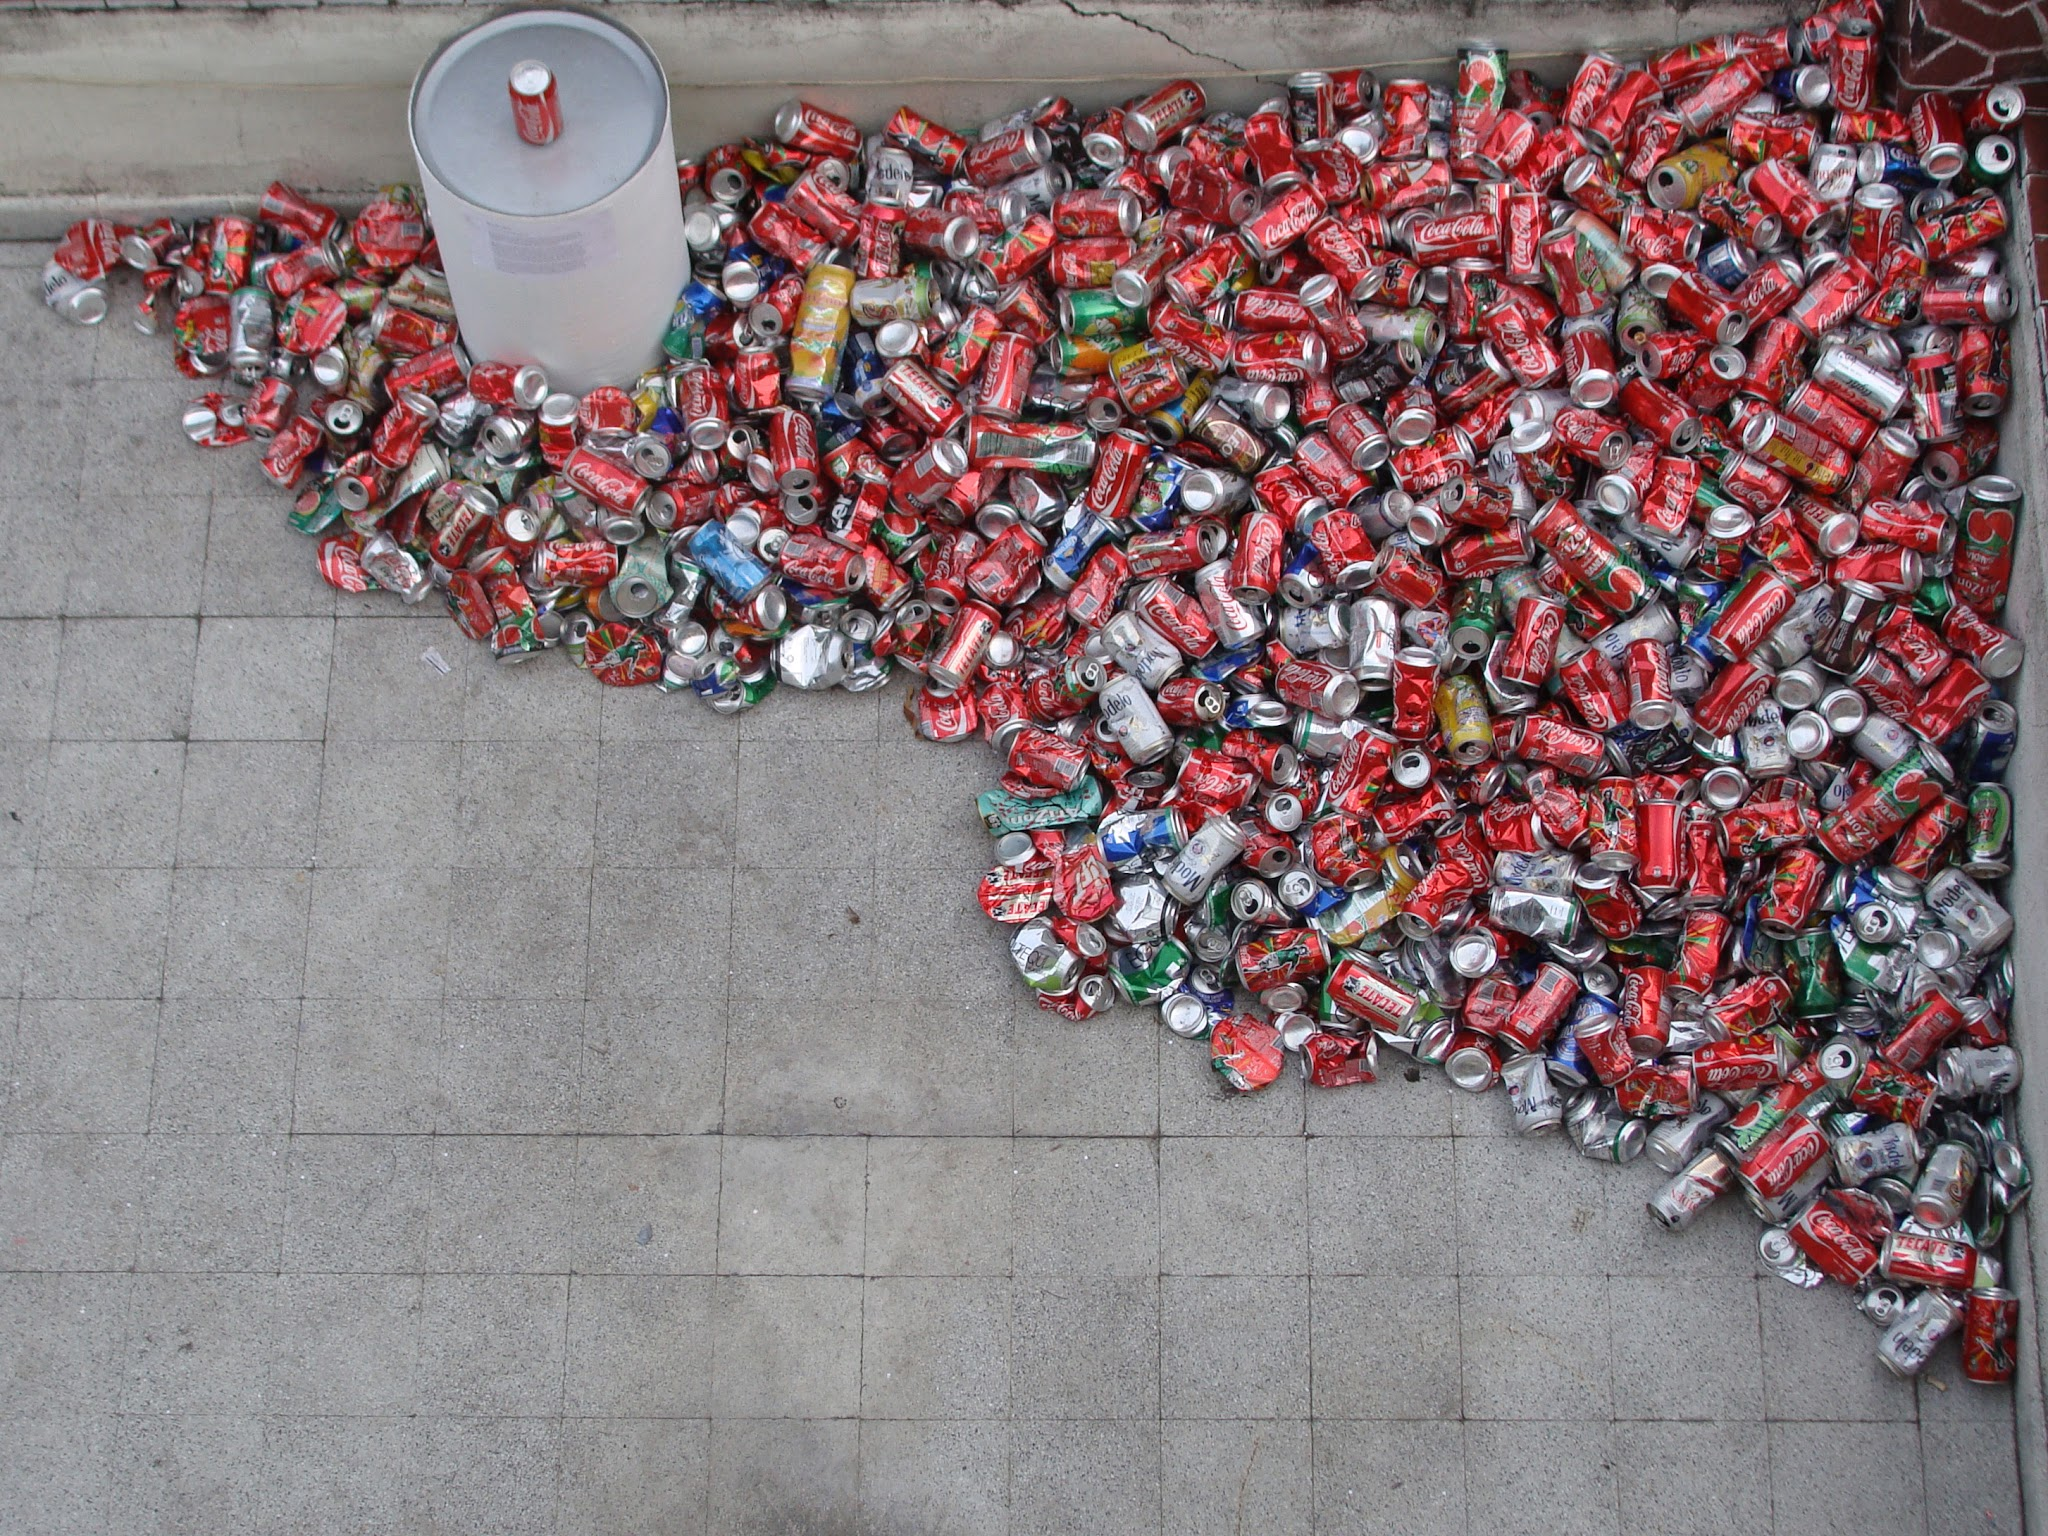 Installation with 25kg of aluminum cans (Complete)